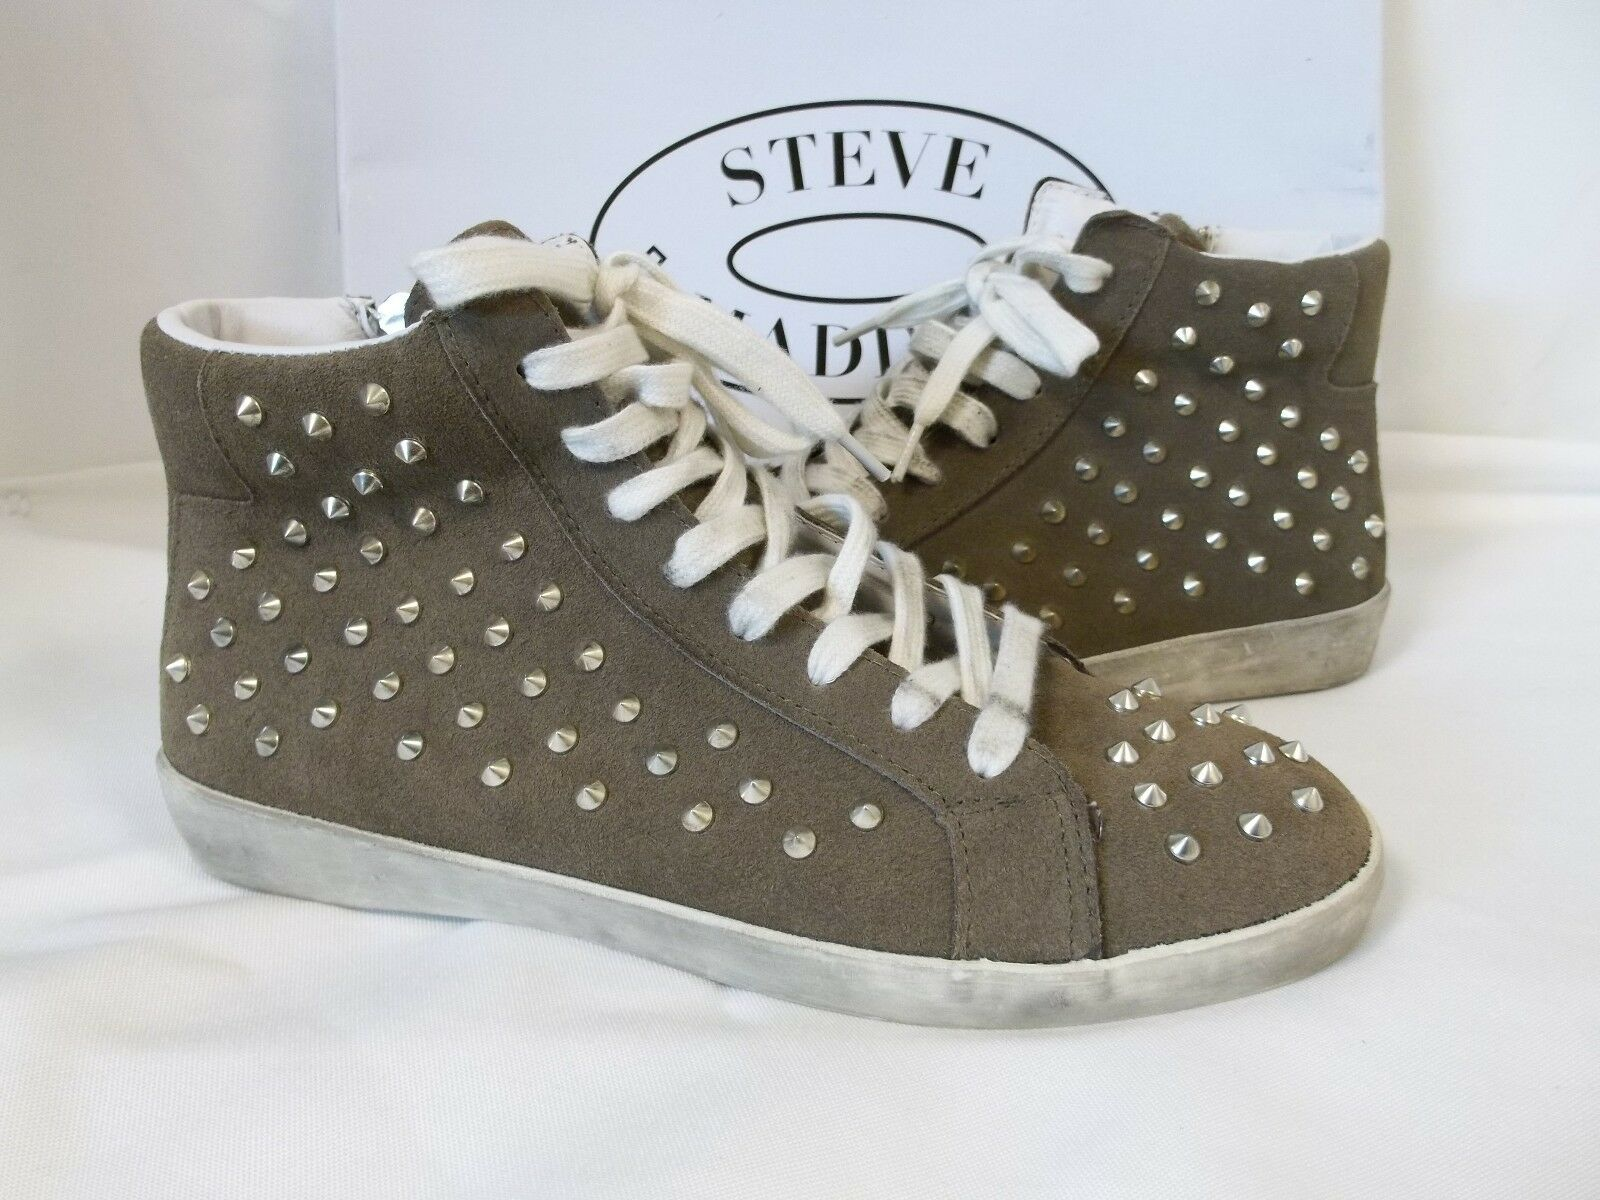 Steve Madden 7.5 M TWYNKLE Taupe Suede Fashion Sneakers New Womens shoes